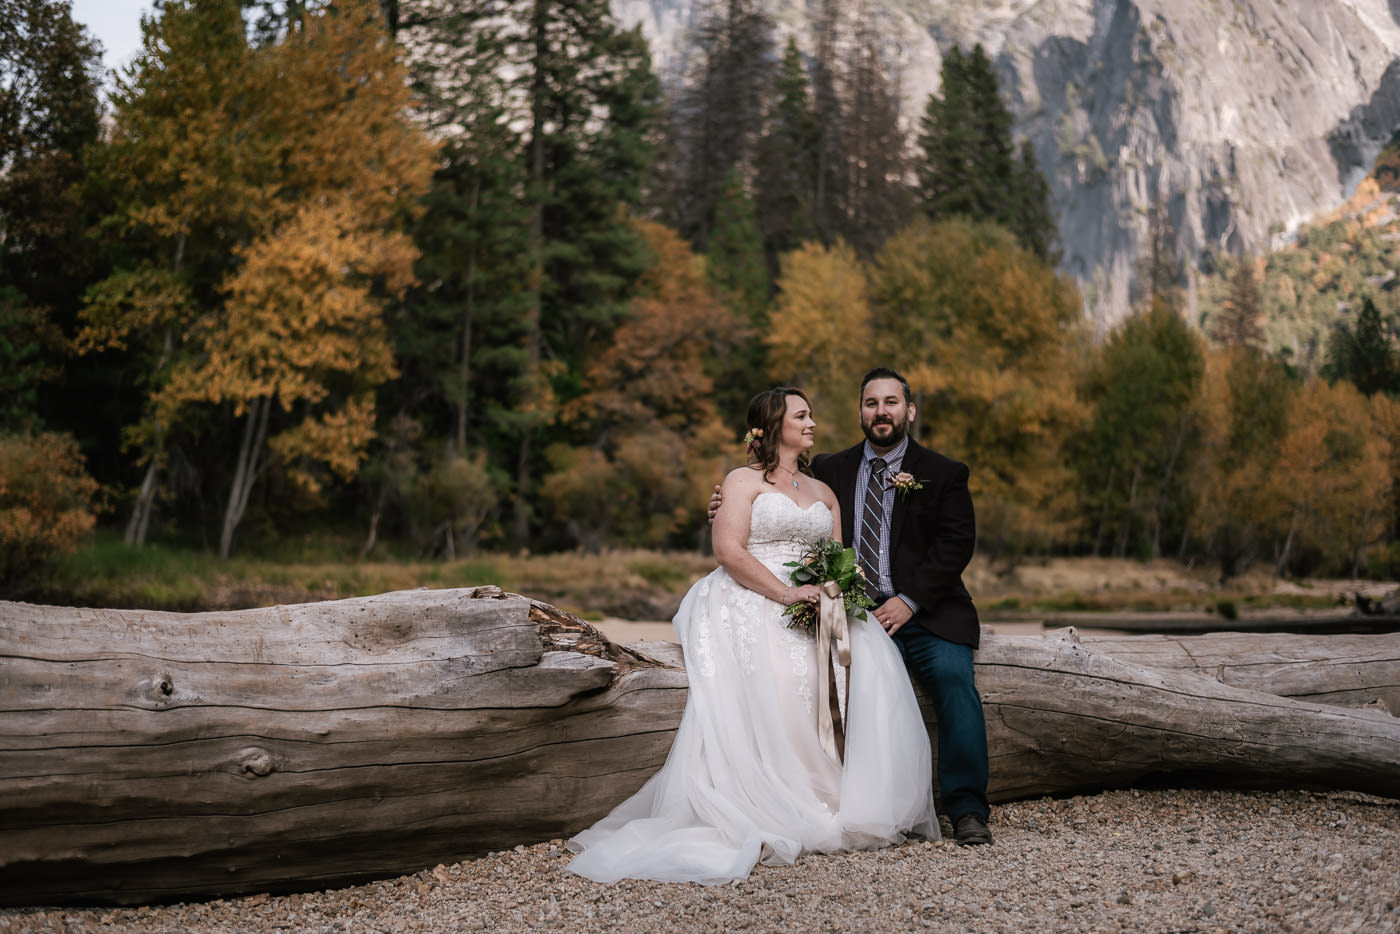 cathedral-beach-elopement-ceremony-yosemite-24.jpg